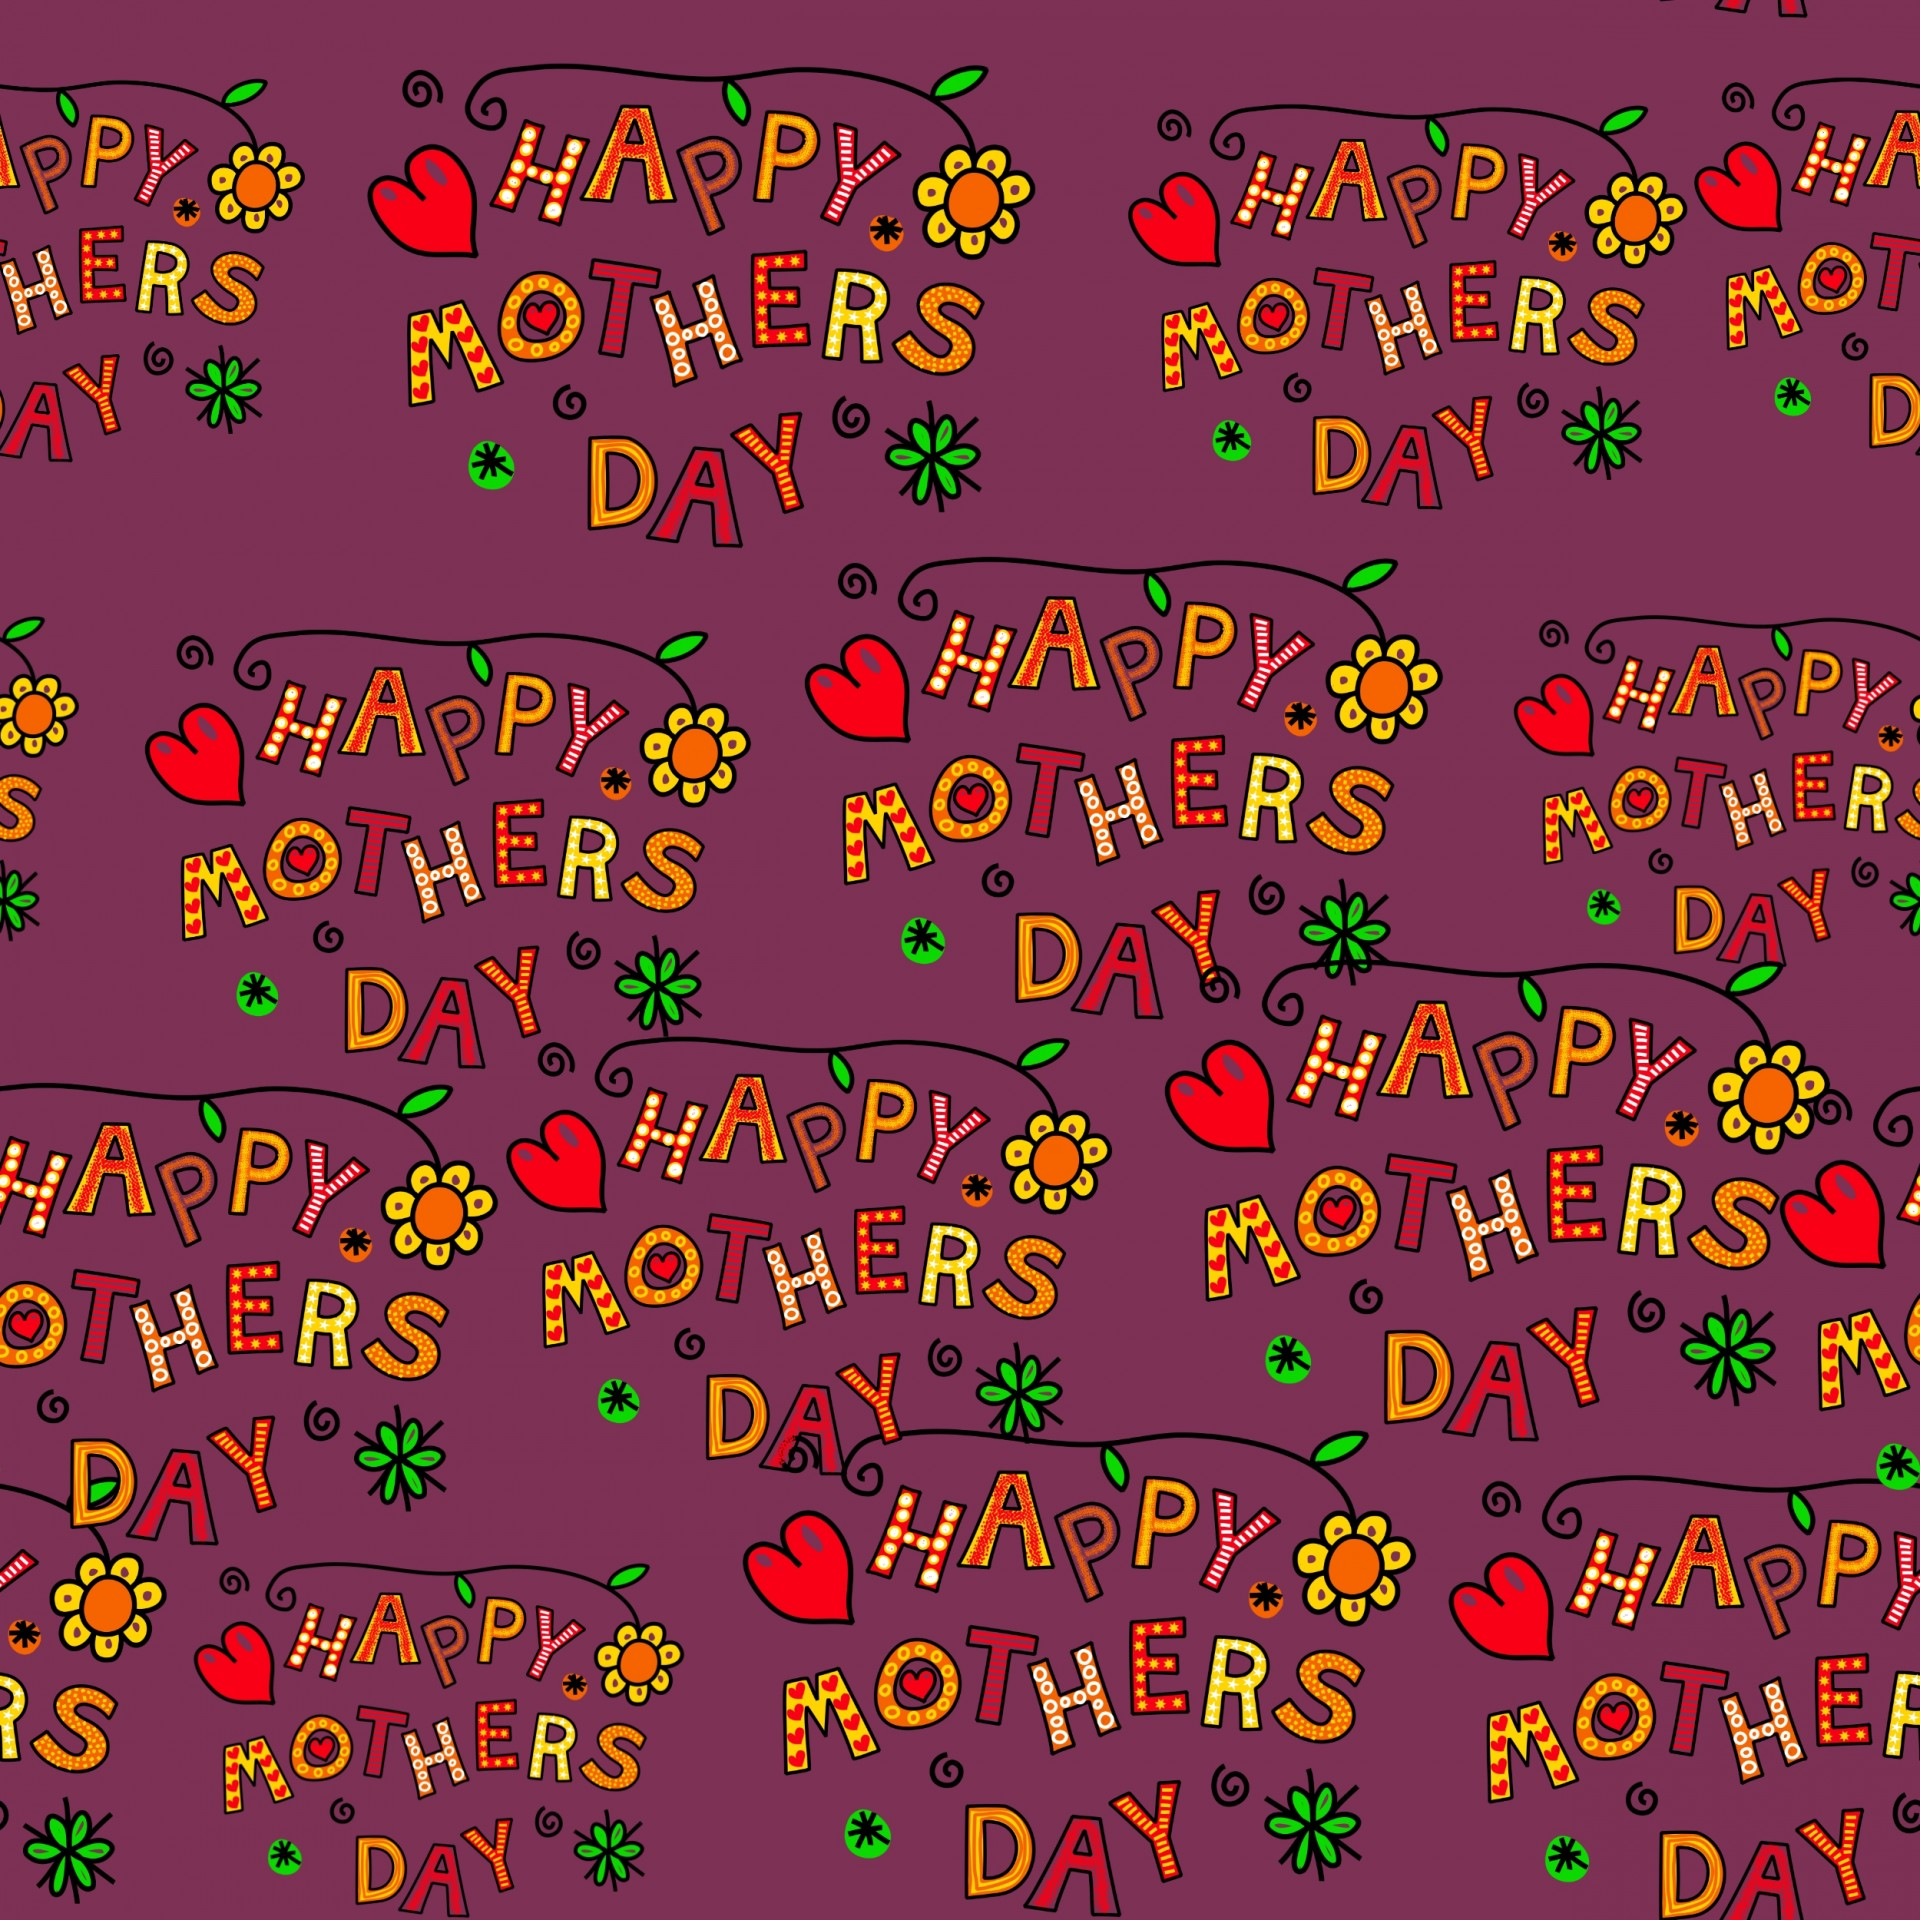 mother's day, happy mother's day